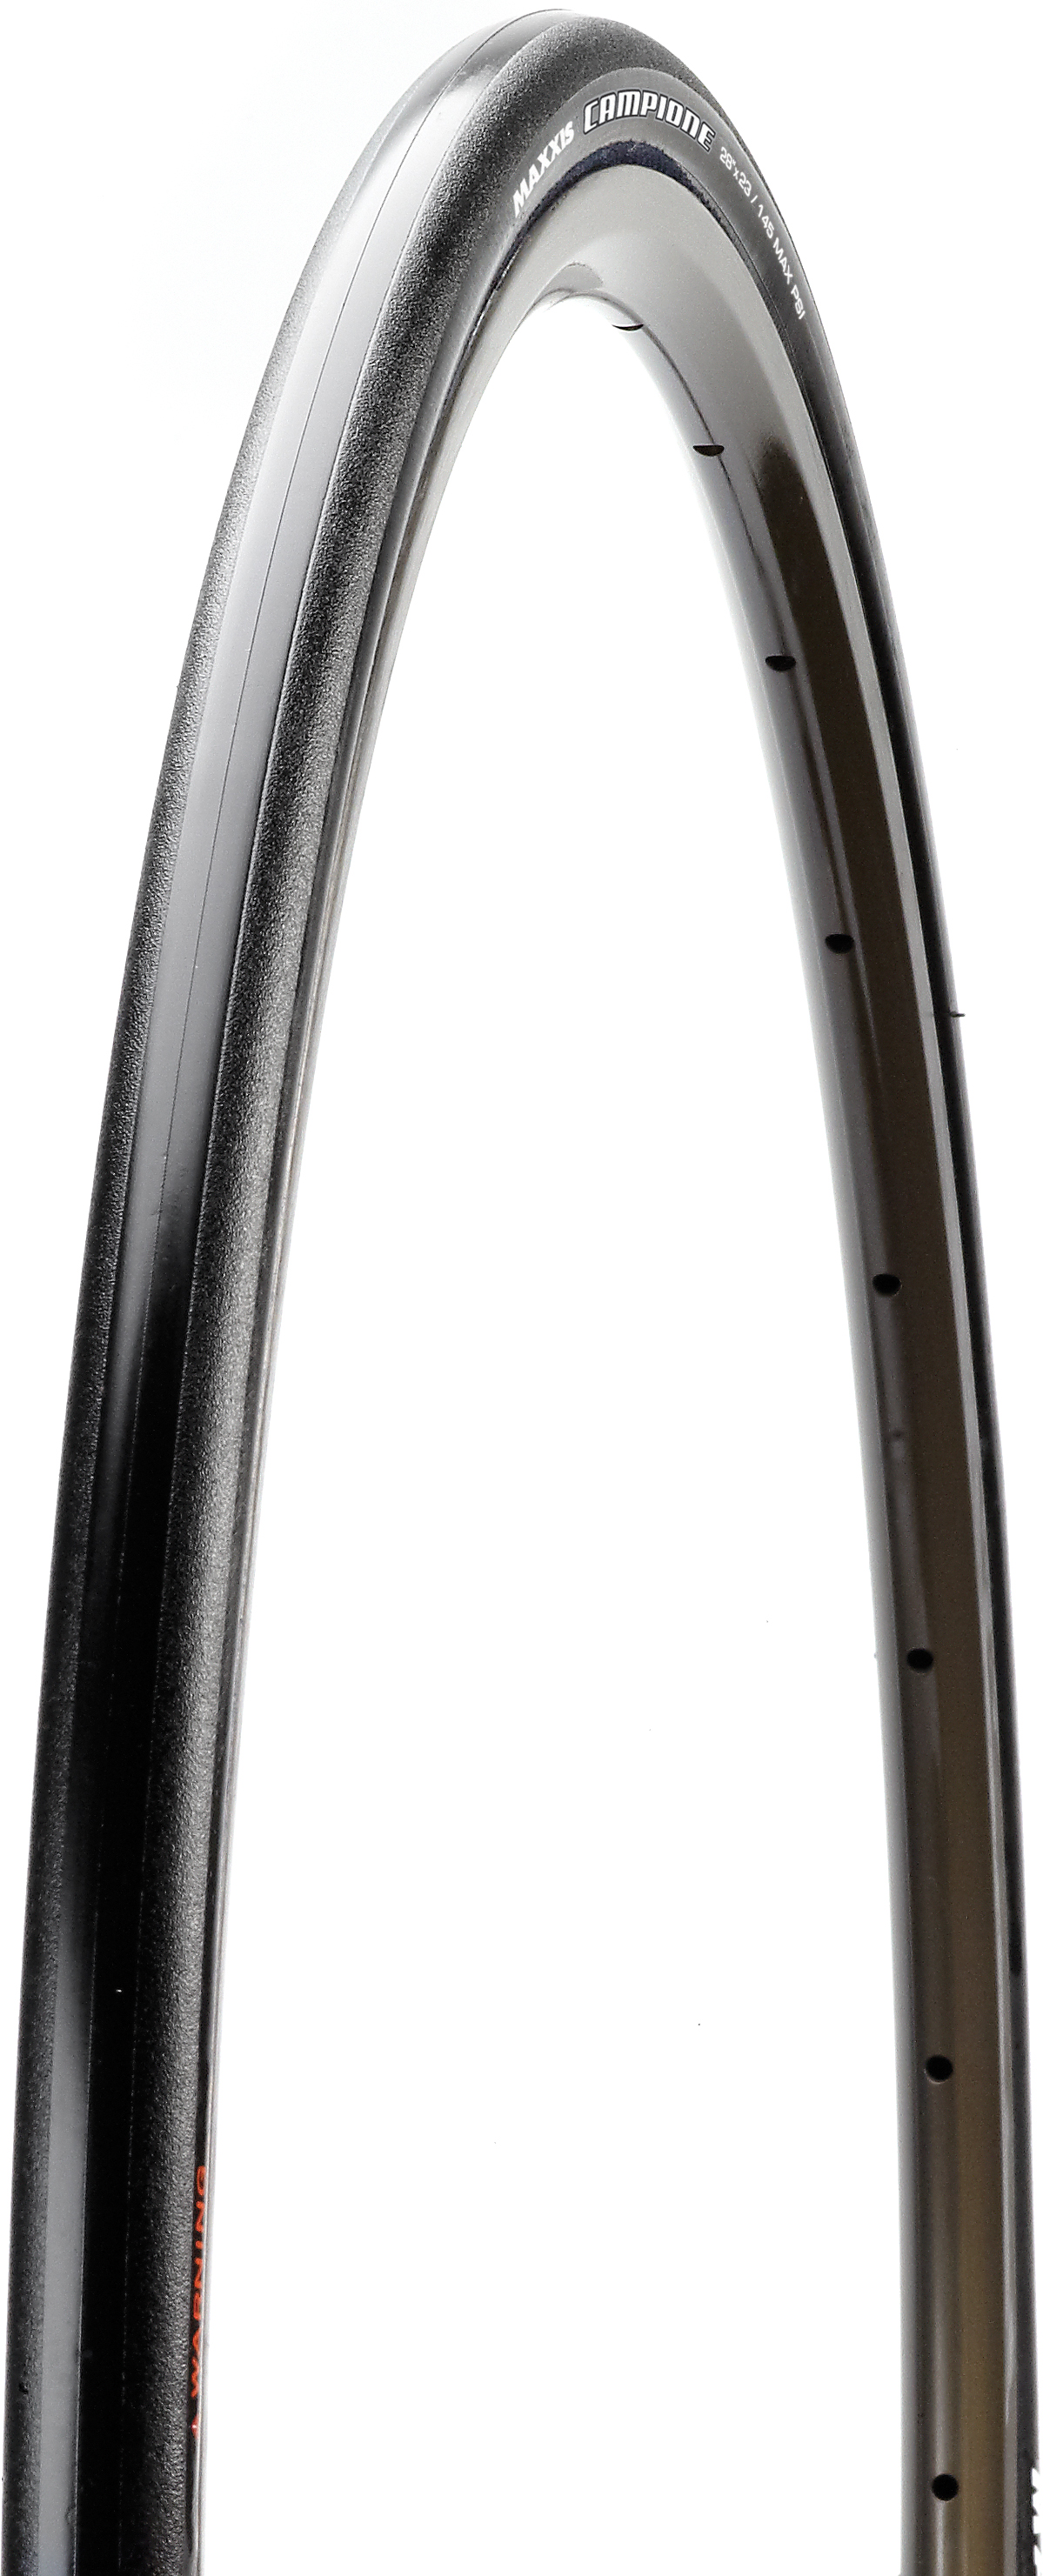 Maxxis Campione Tubular Road Tyre | Tyres